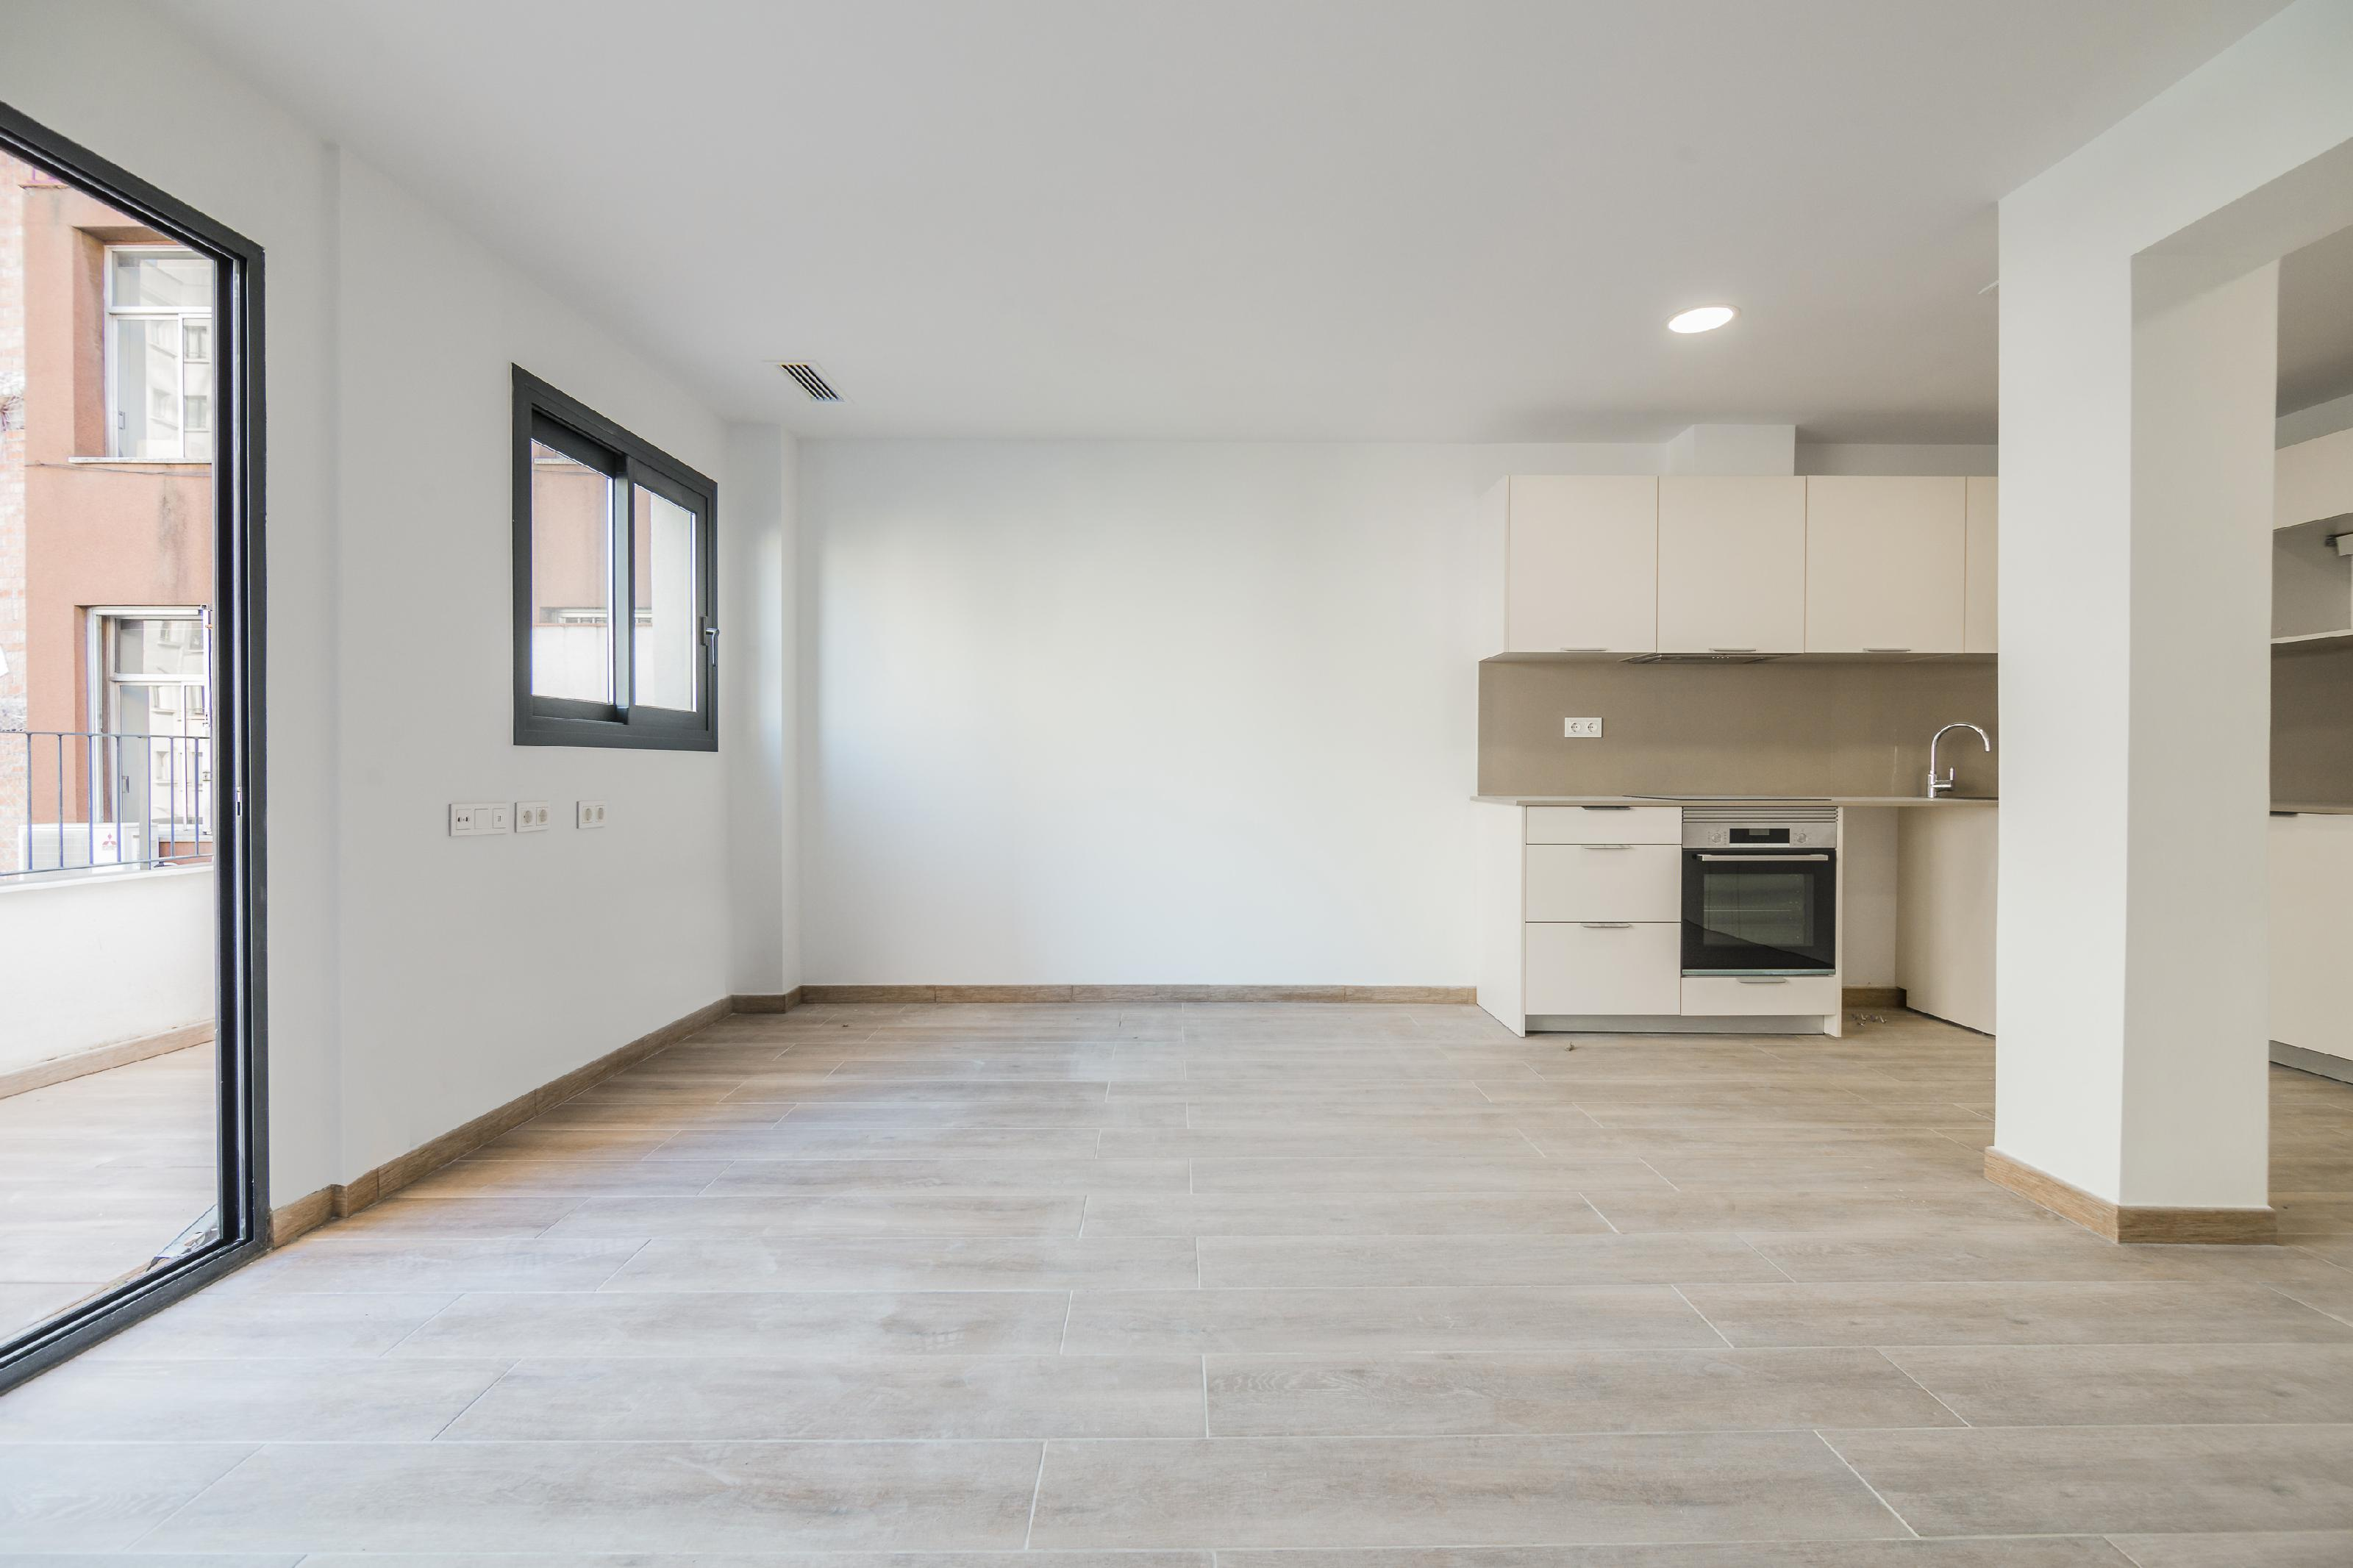 220653 Penthouse for sale in Sarrià-Sant Gervasi, Sant Gervasi-Galvany 3